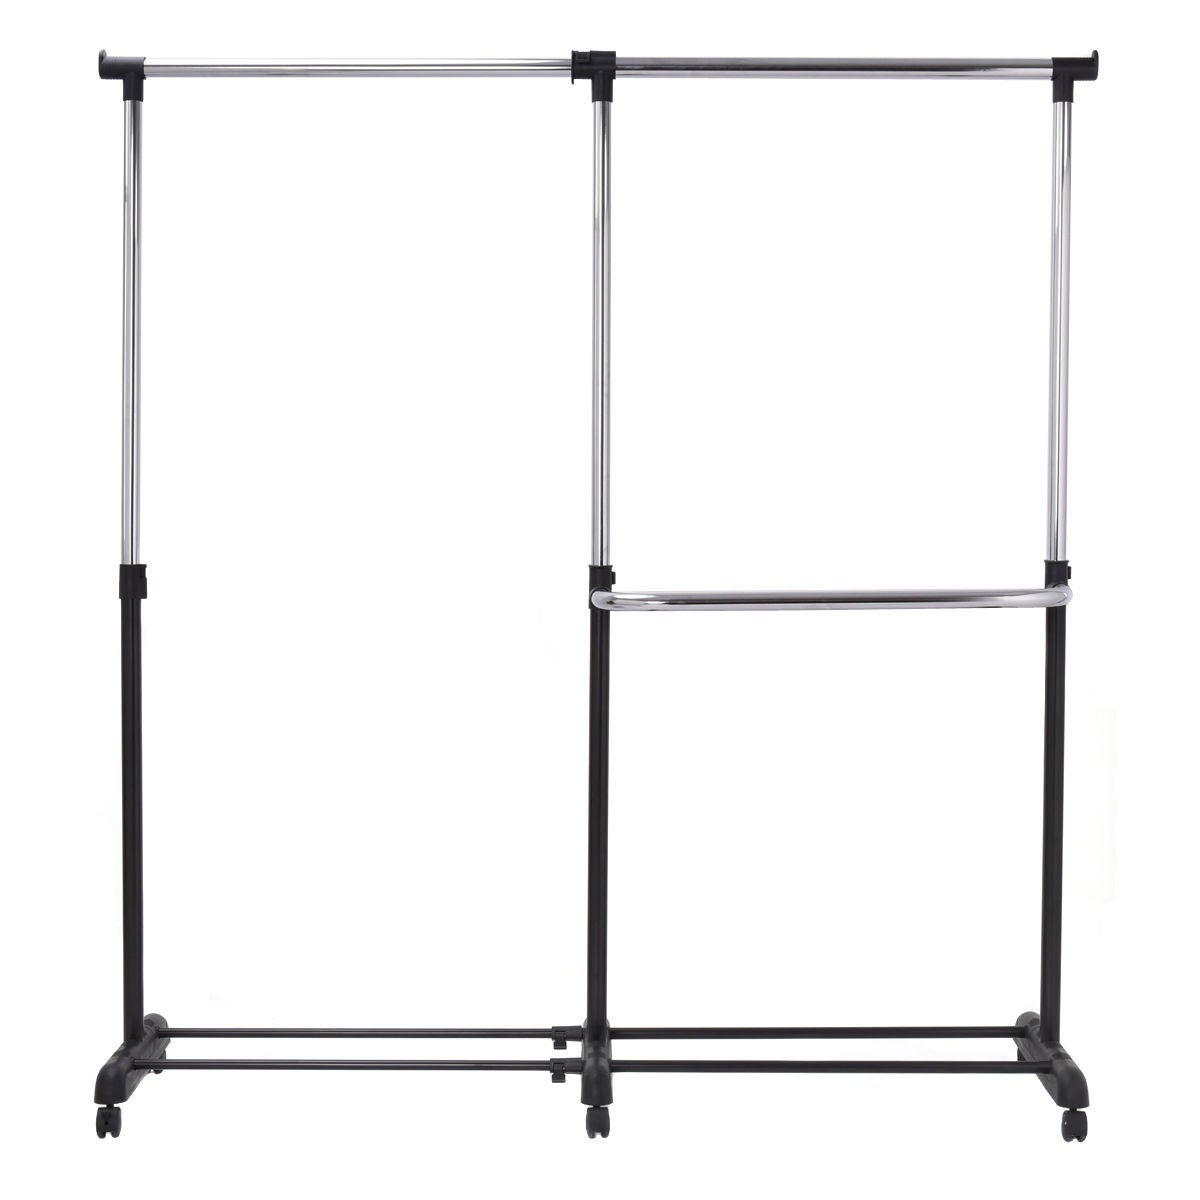 Shop costway adjustable heavy duty garment rack rolling clothes hanger extendable rail rack sliver free shipping on orders over 45 overstock com